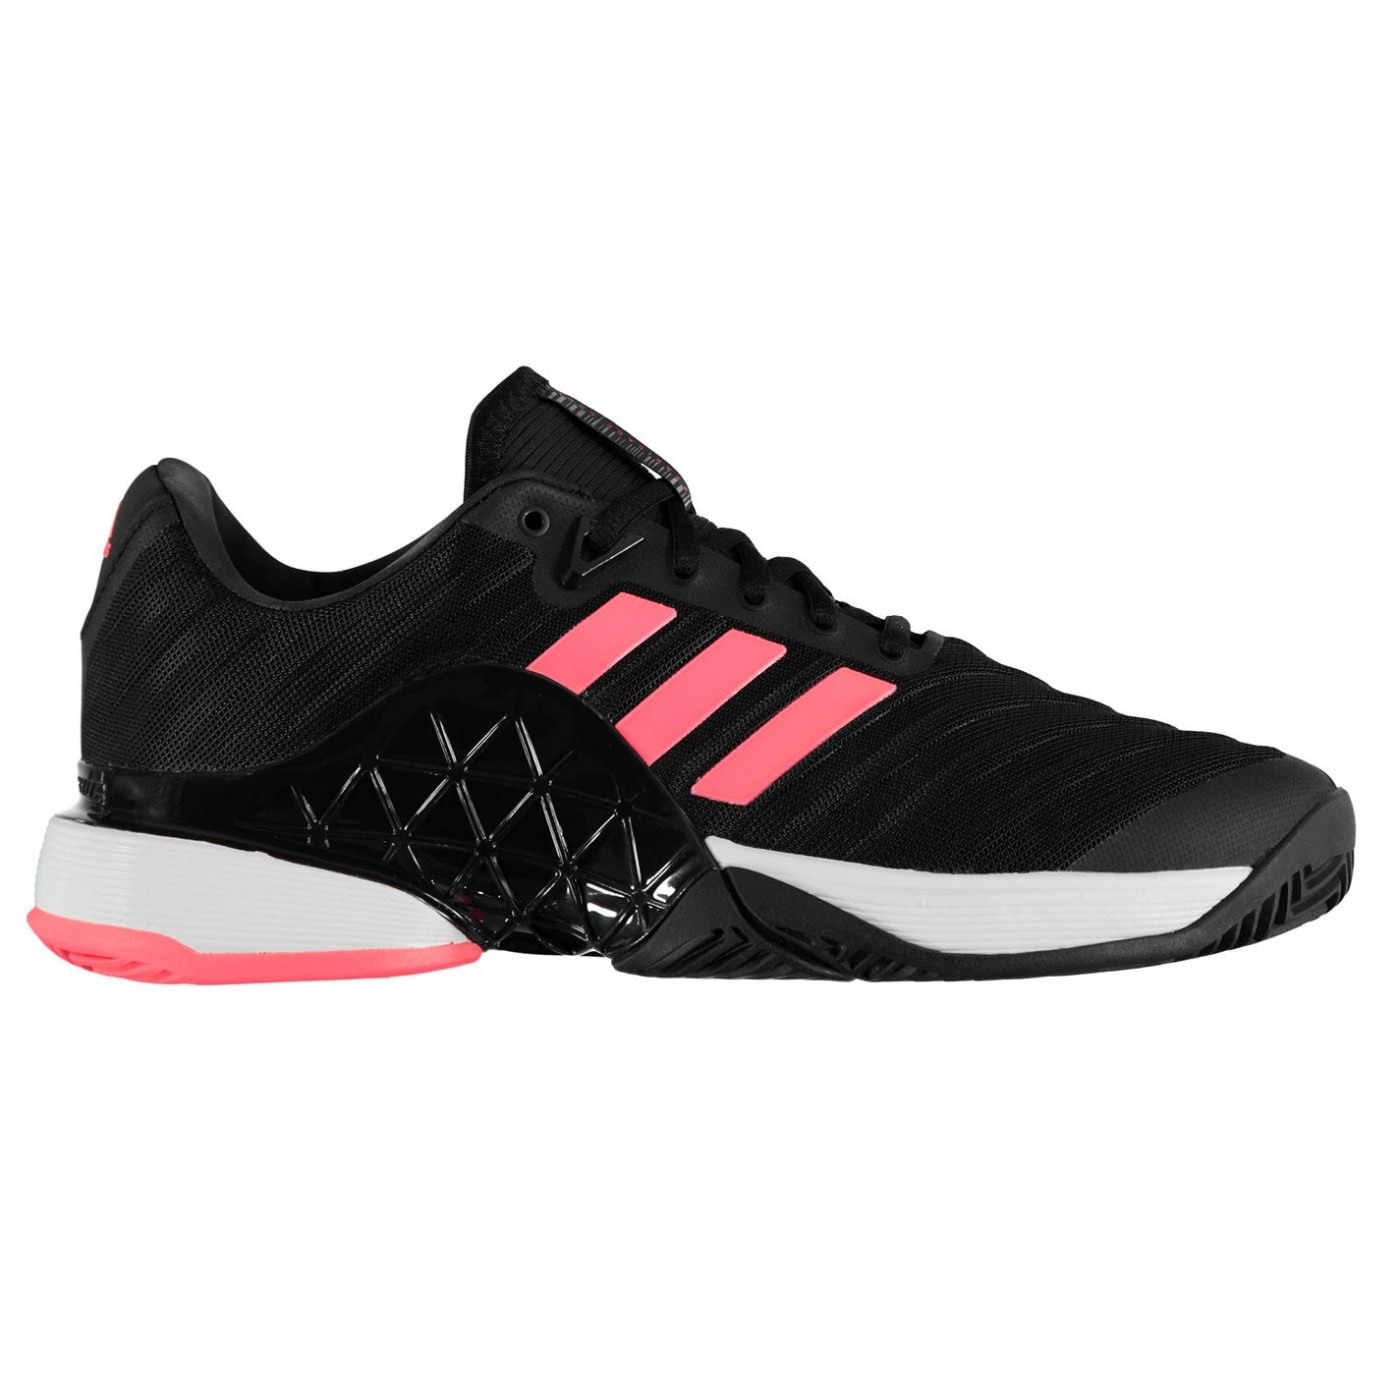 Adidas Barricade 2018 Mens Tennis Shoes